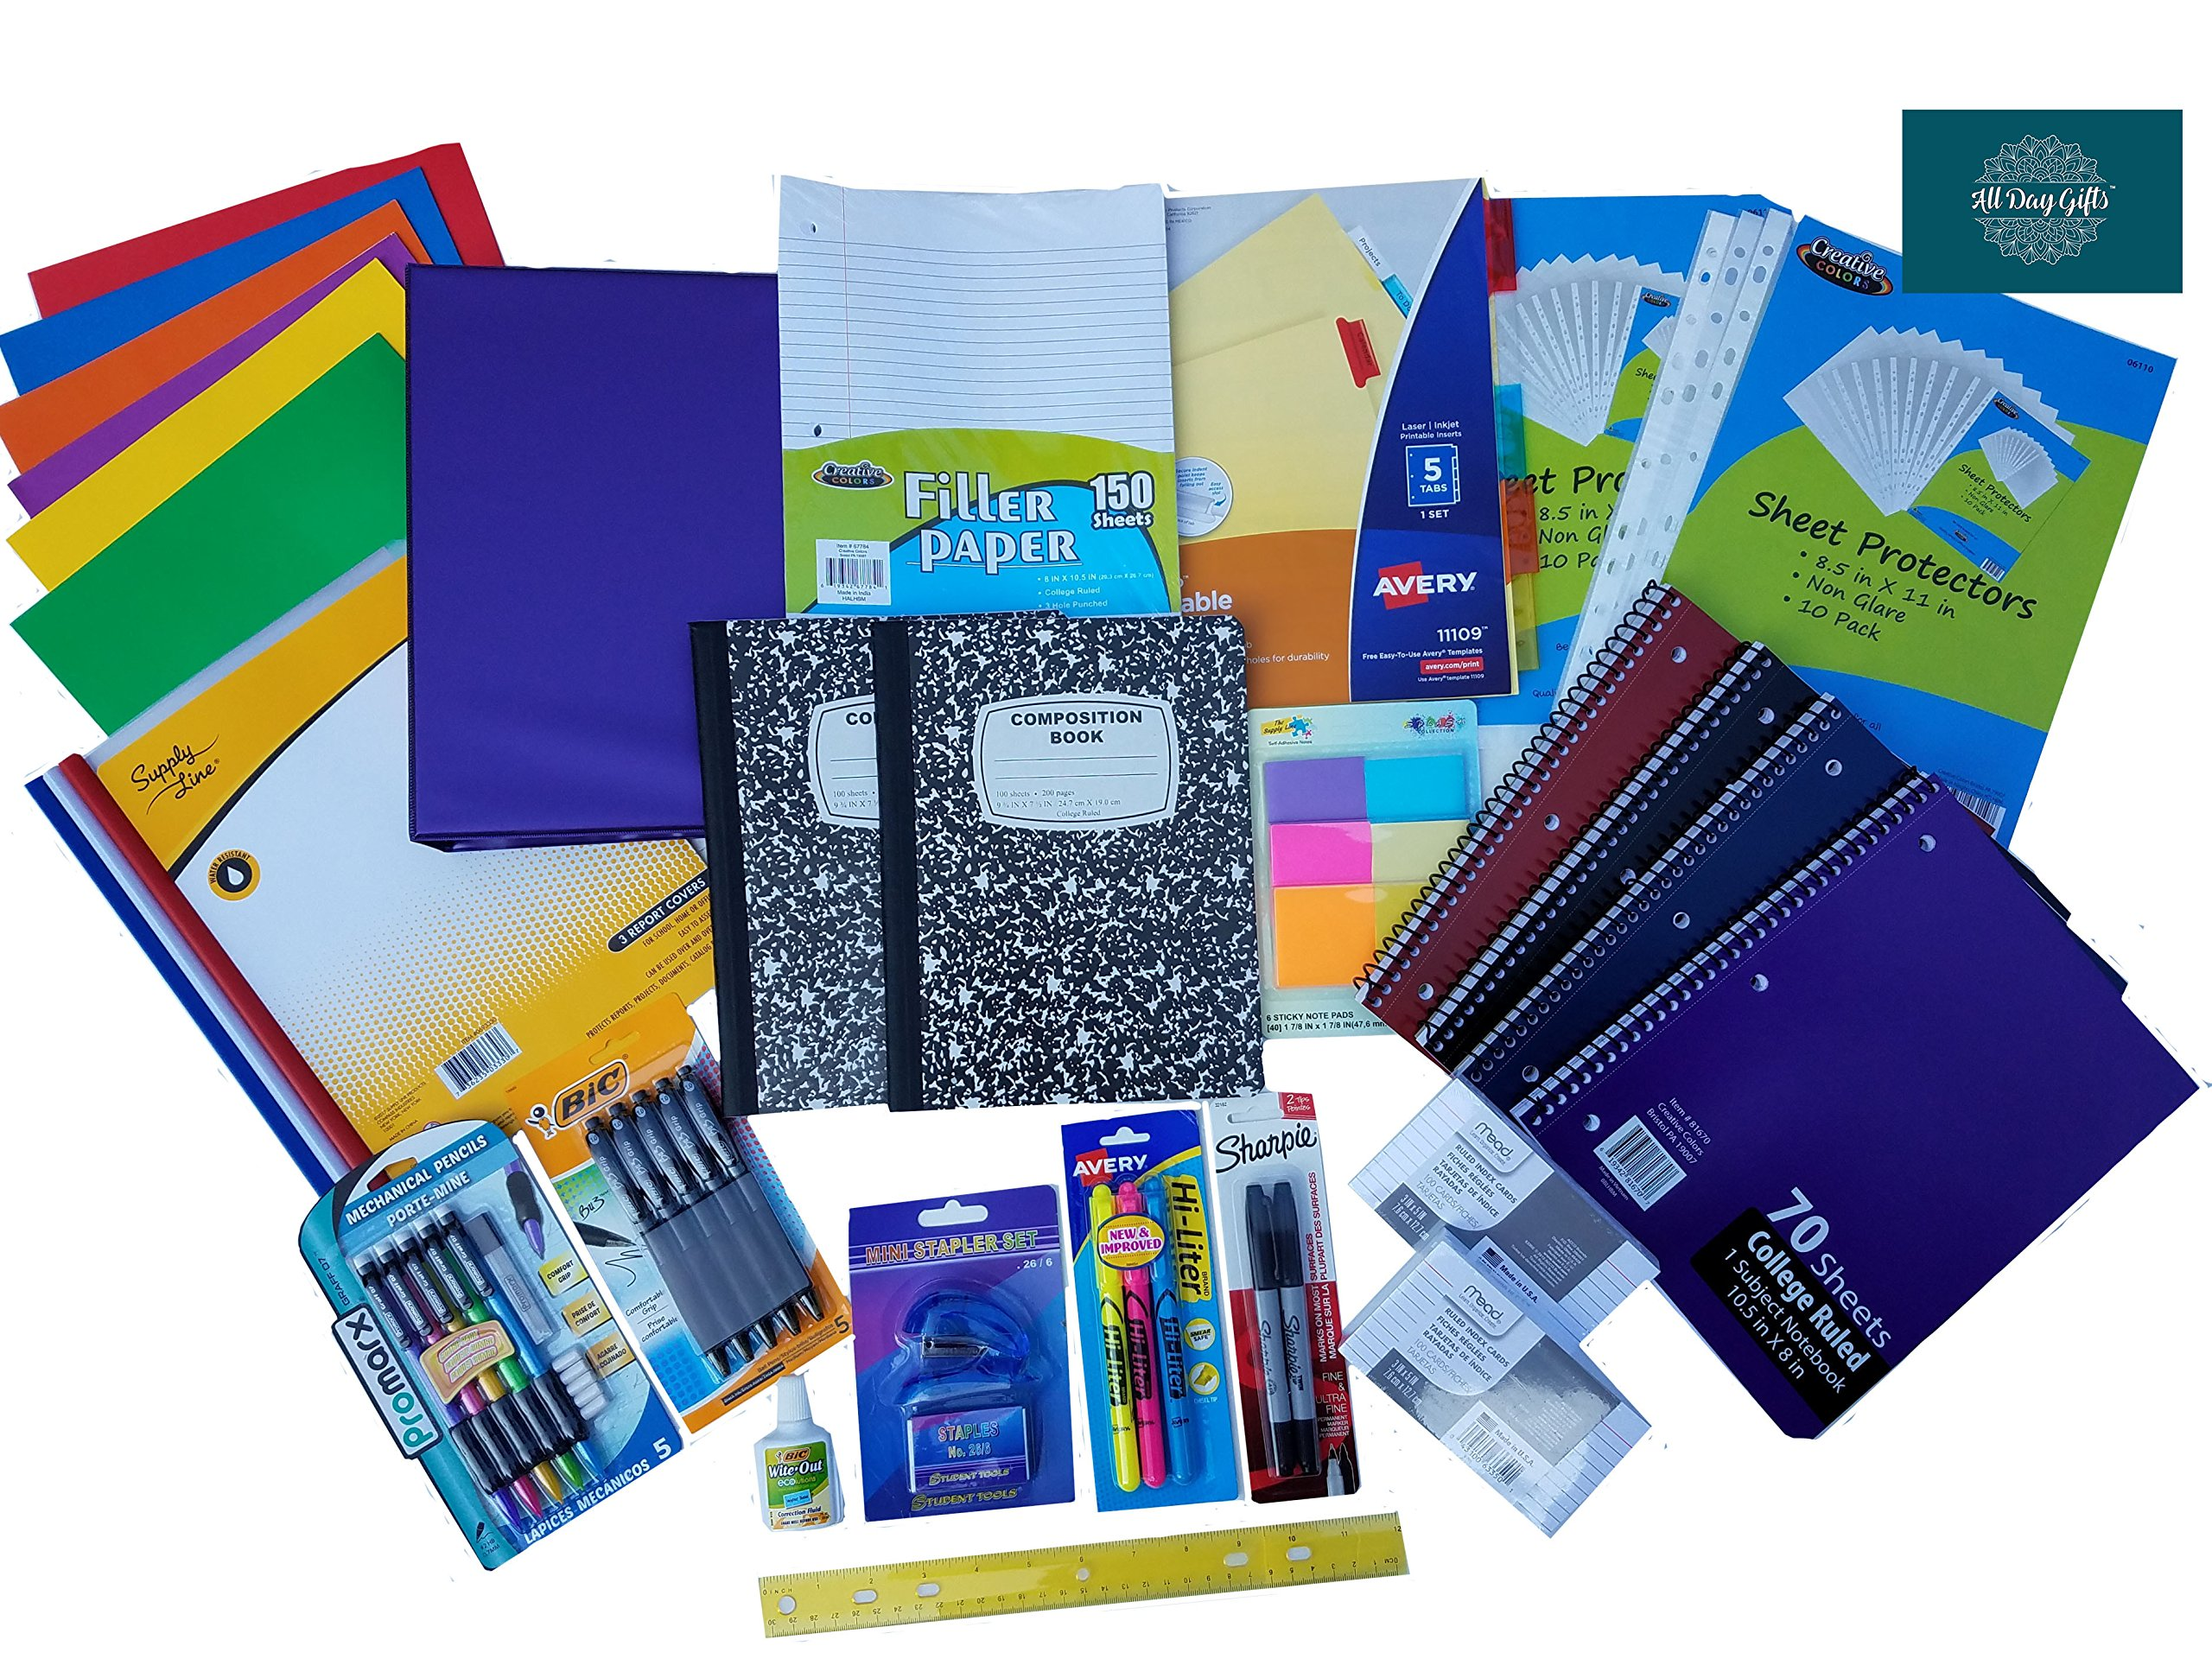 Over 55 Count School Supply Bundle by All Day Gifts, for Middle, High School and College - Binder, Mechanical Pencils, Sharpie, Pens, Hi-liters, Folders, Note Books Plus More (College Ruled)